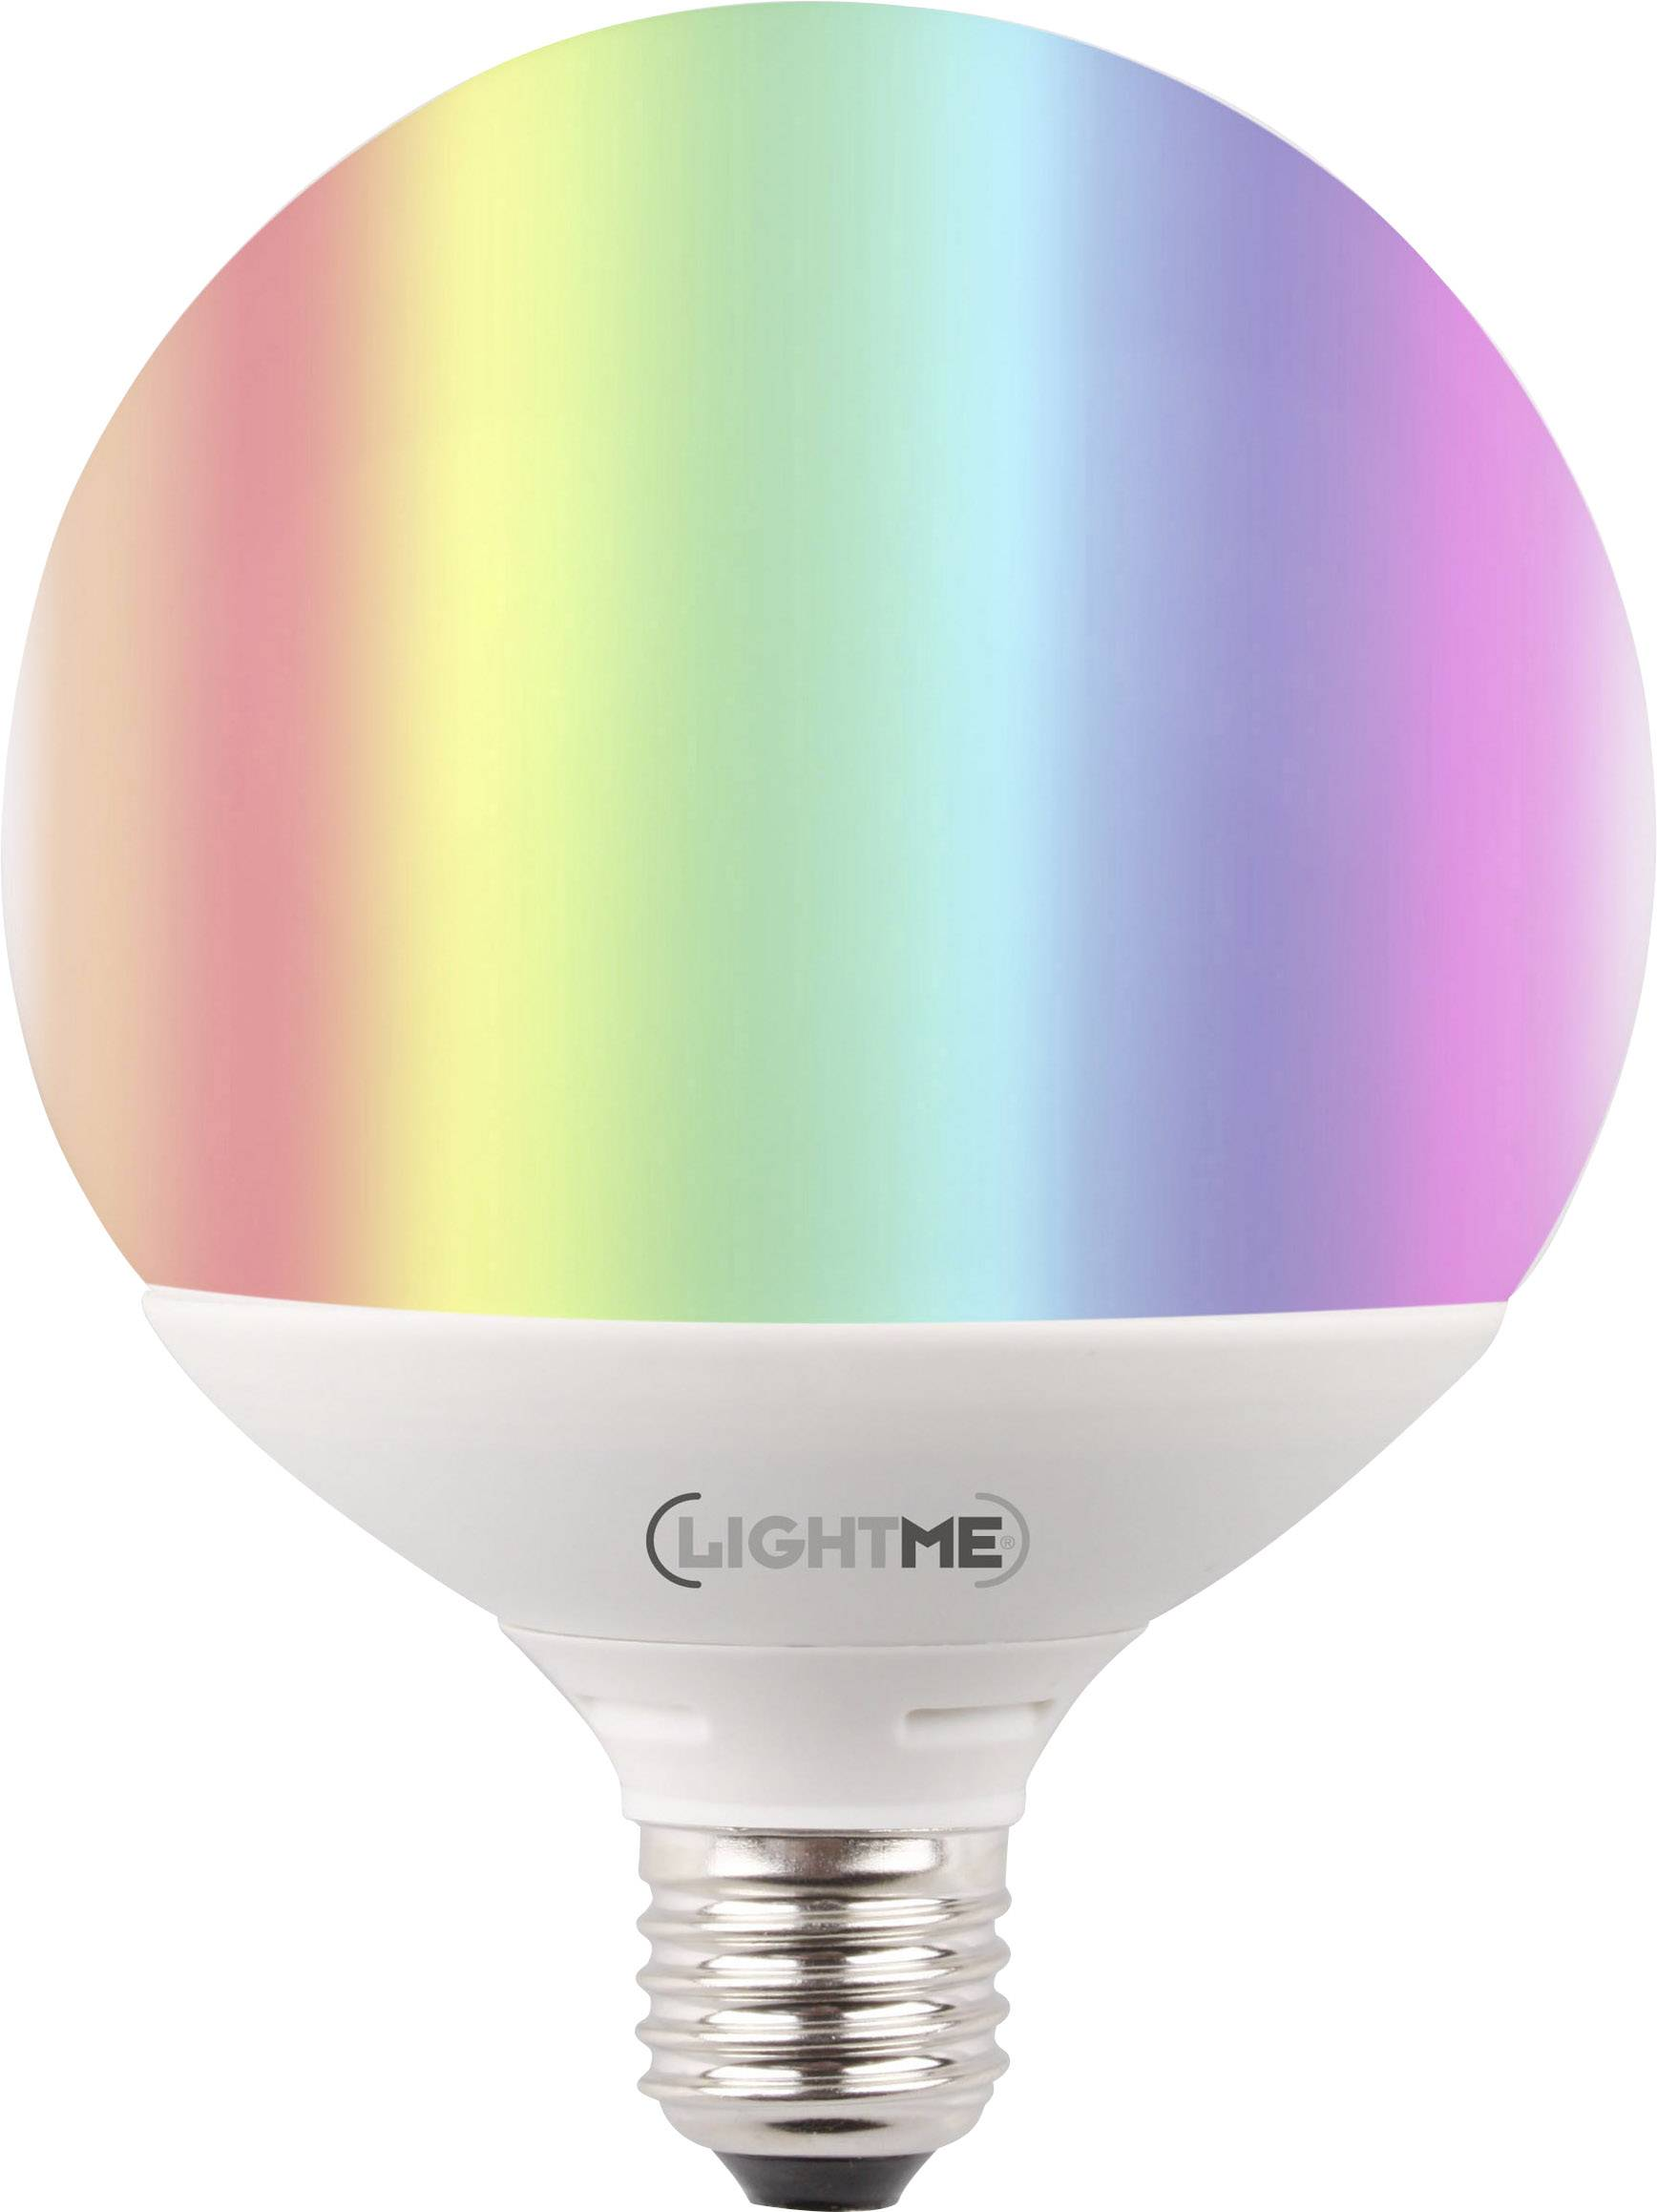 lightme lm85195 led lamp e27 bol 10 w 60 w rgbw colorchanging incl afstandsbediening energielabel a a e 1 stu